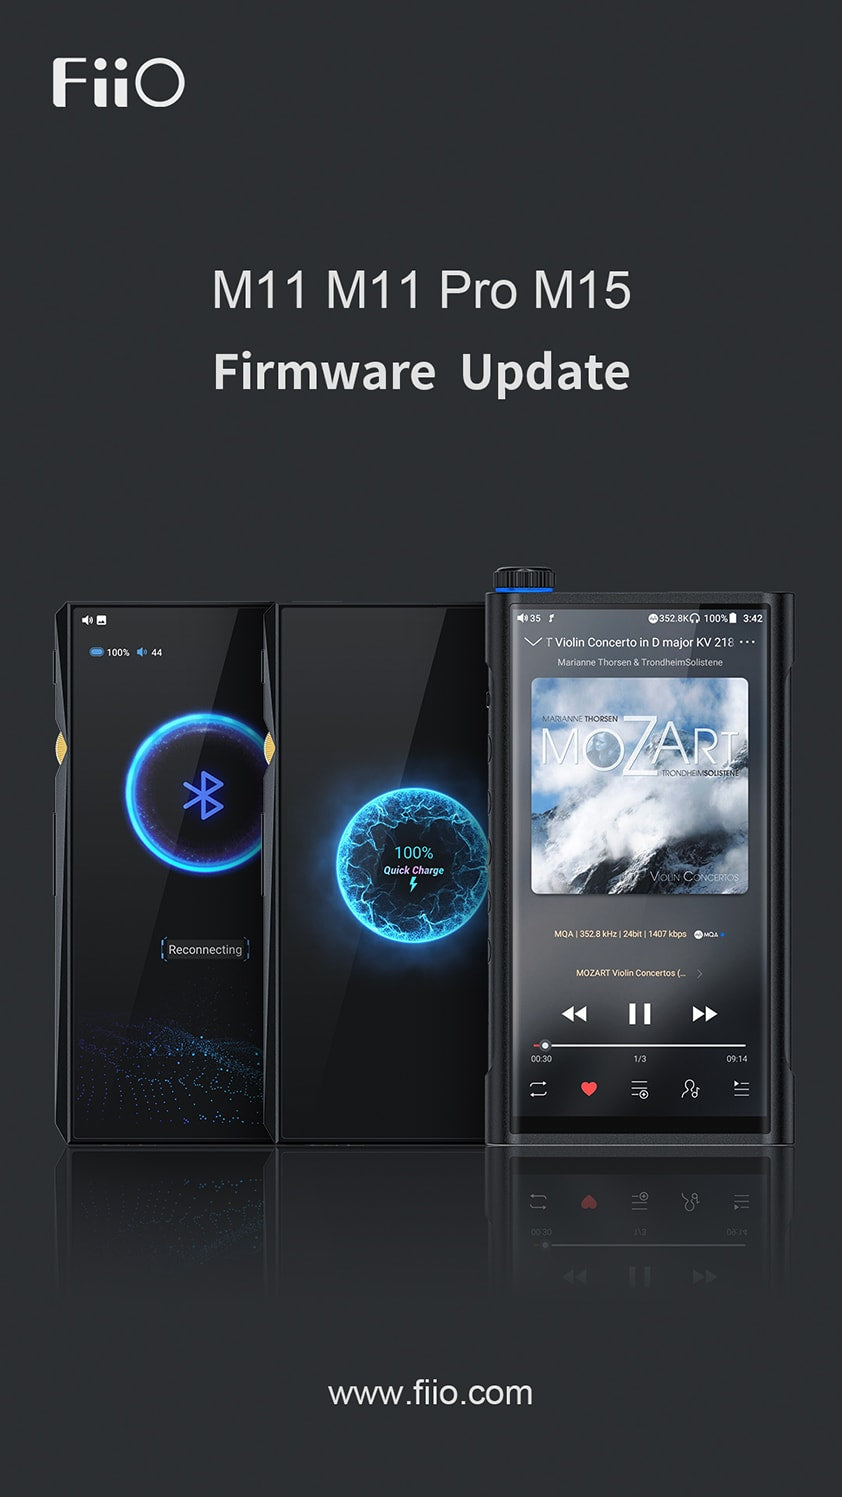 [New firmware] New added global MQA support, the new firmware for M11/M11PRO/M15 is now avialable!